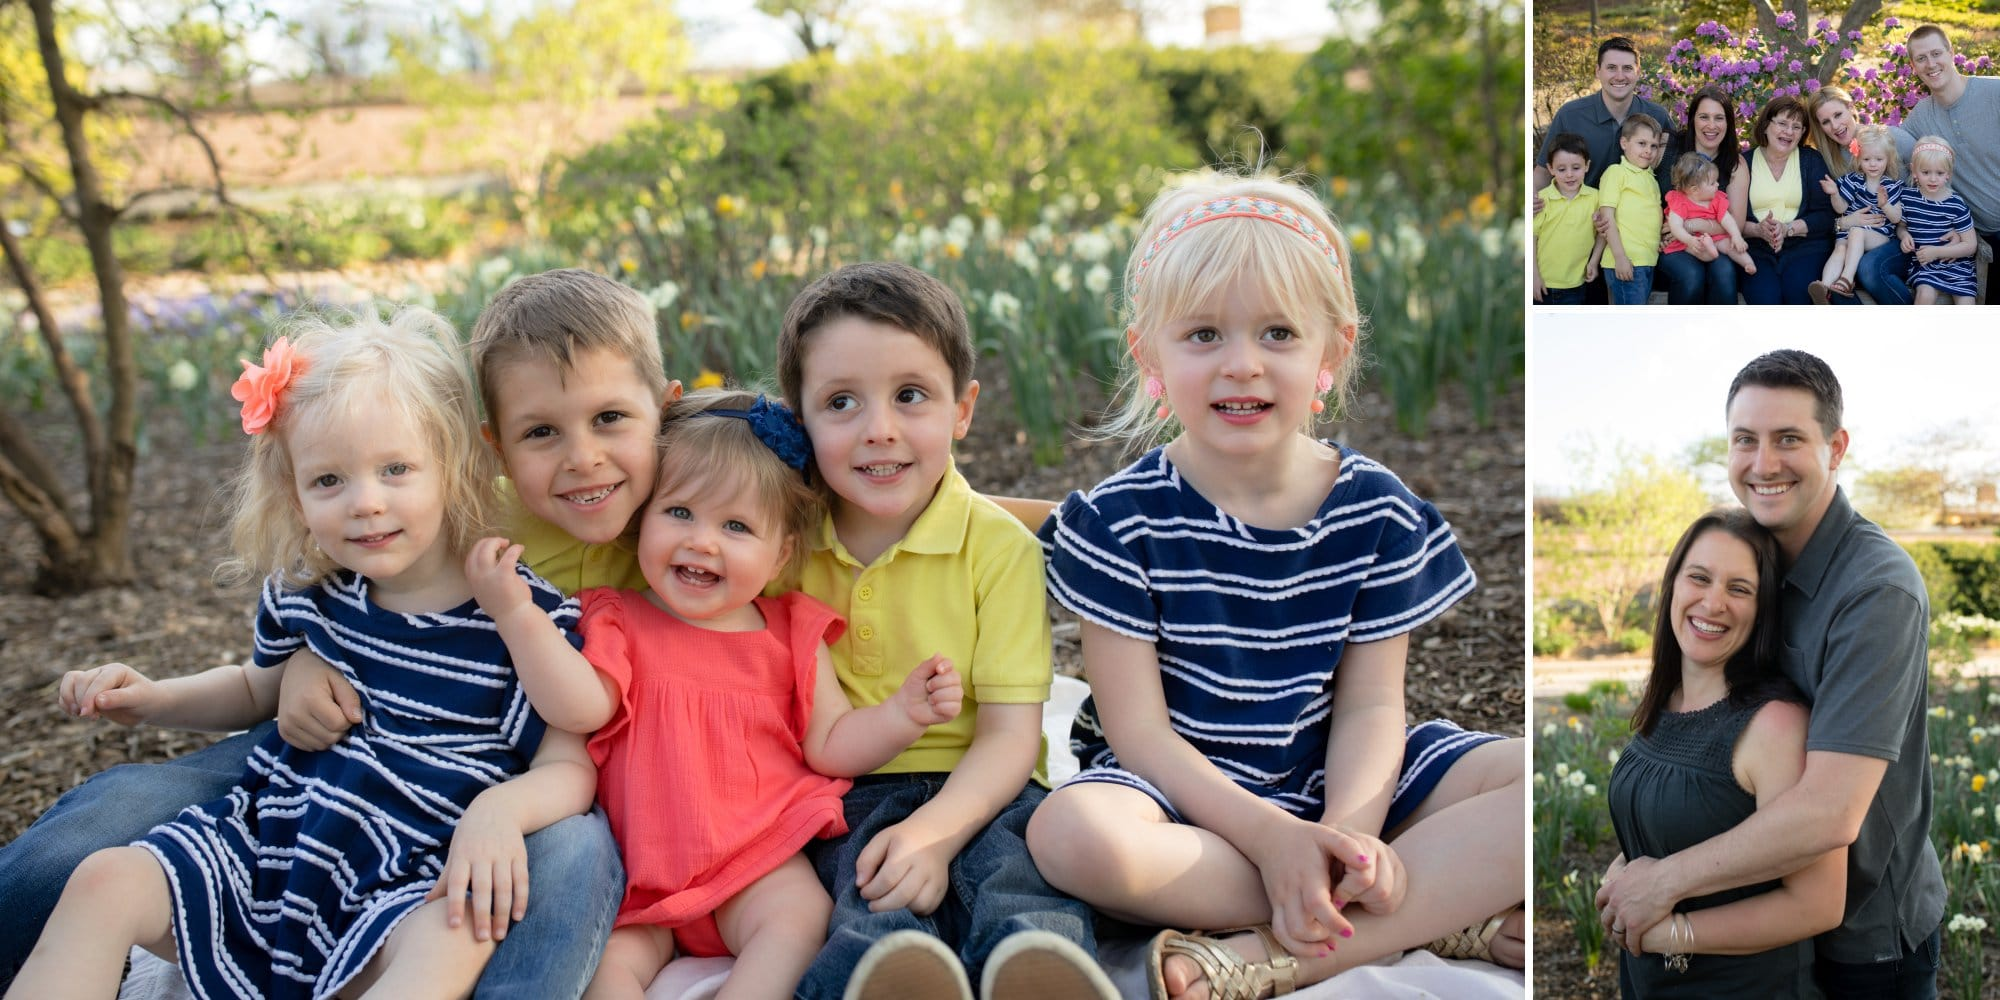 Grandkids in bright spring colors at Lilacia Park in Lombard